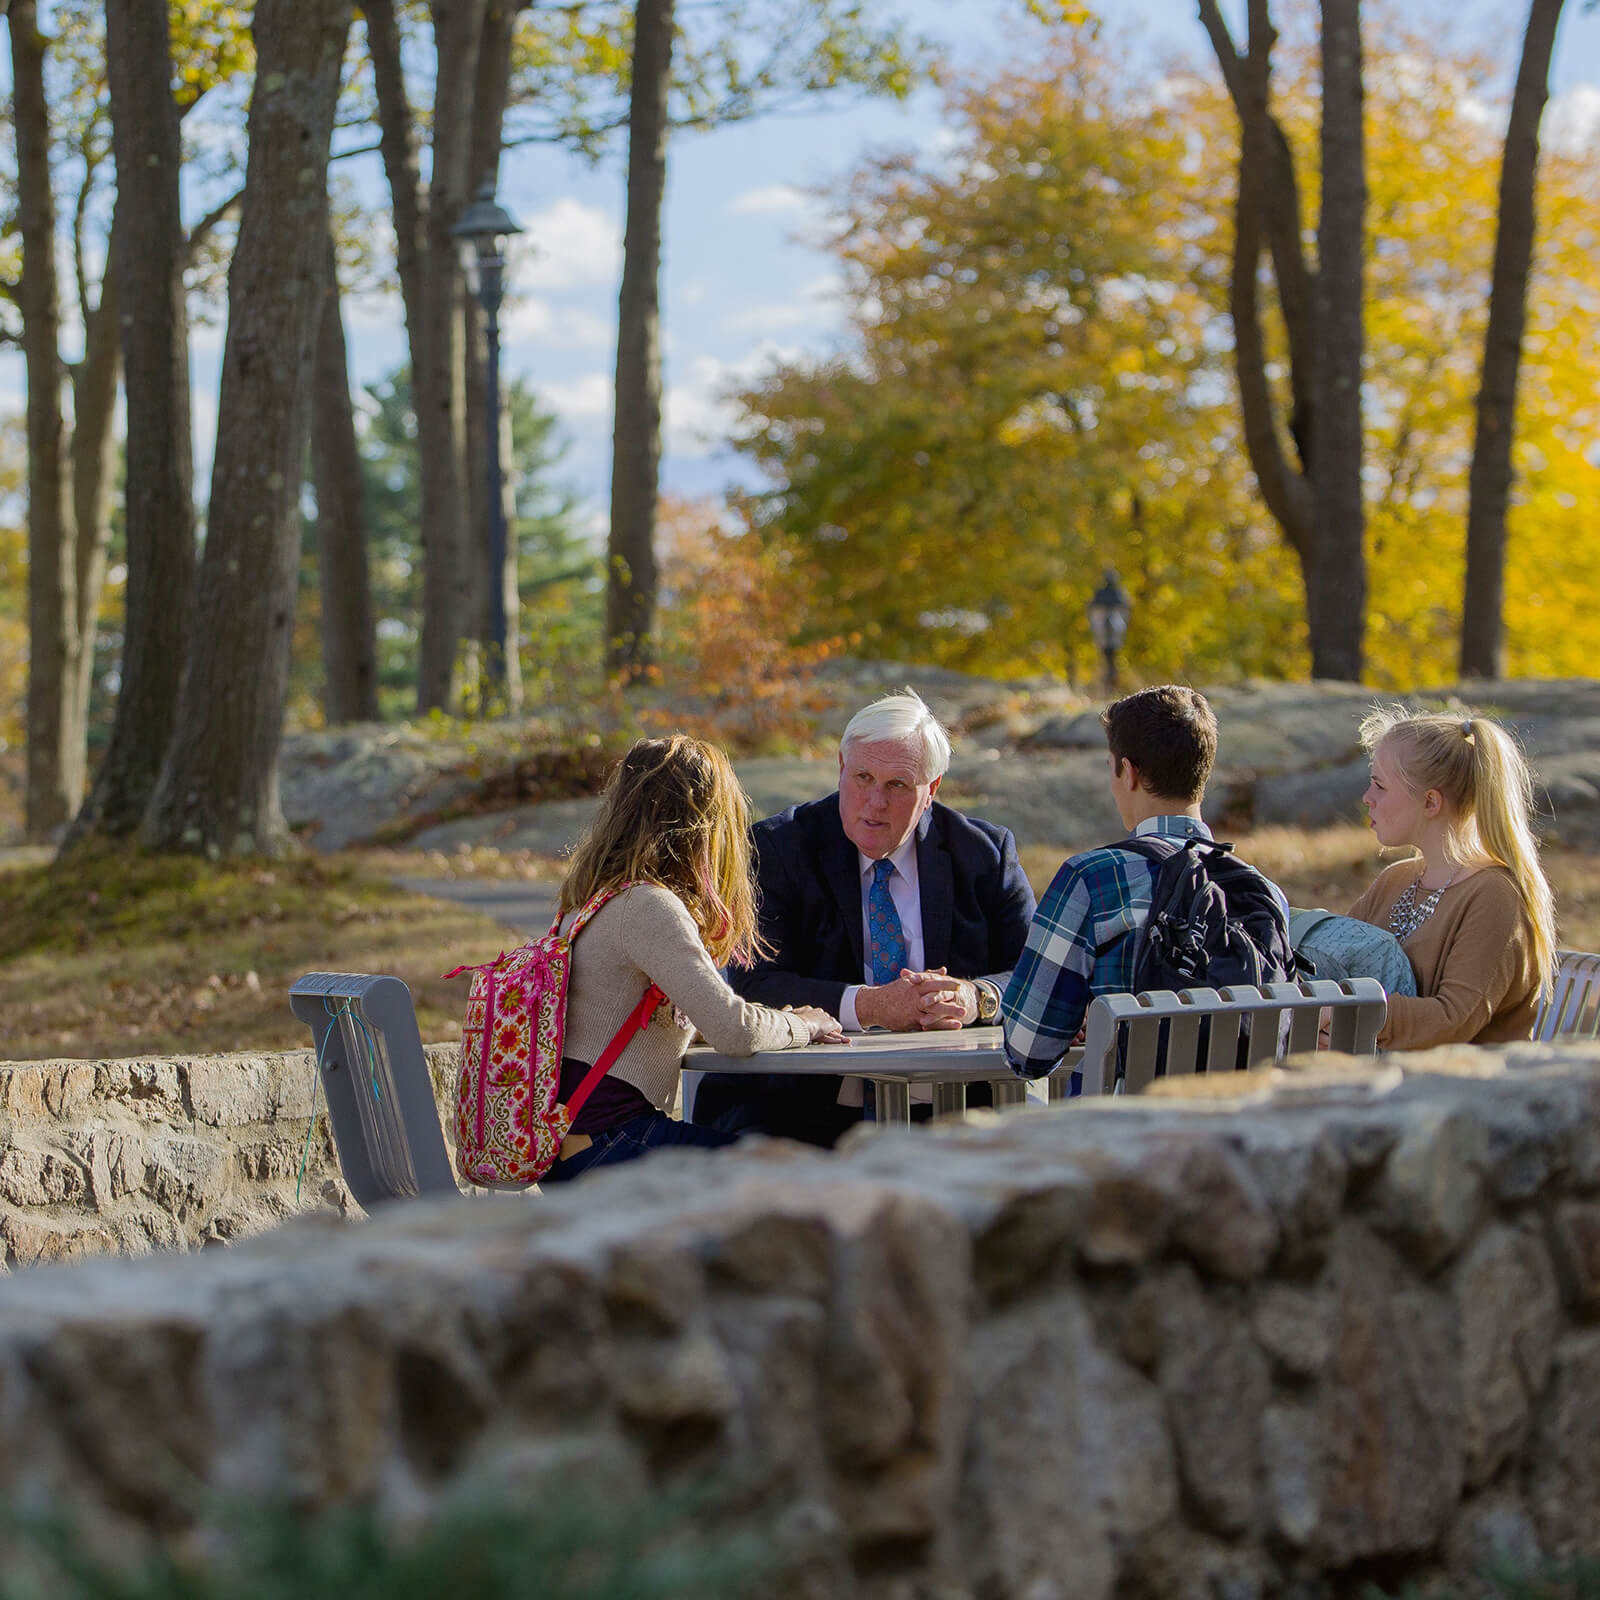 Dr. Wylie and 3 students sitting at a table outside and talking